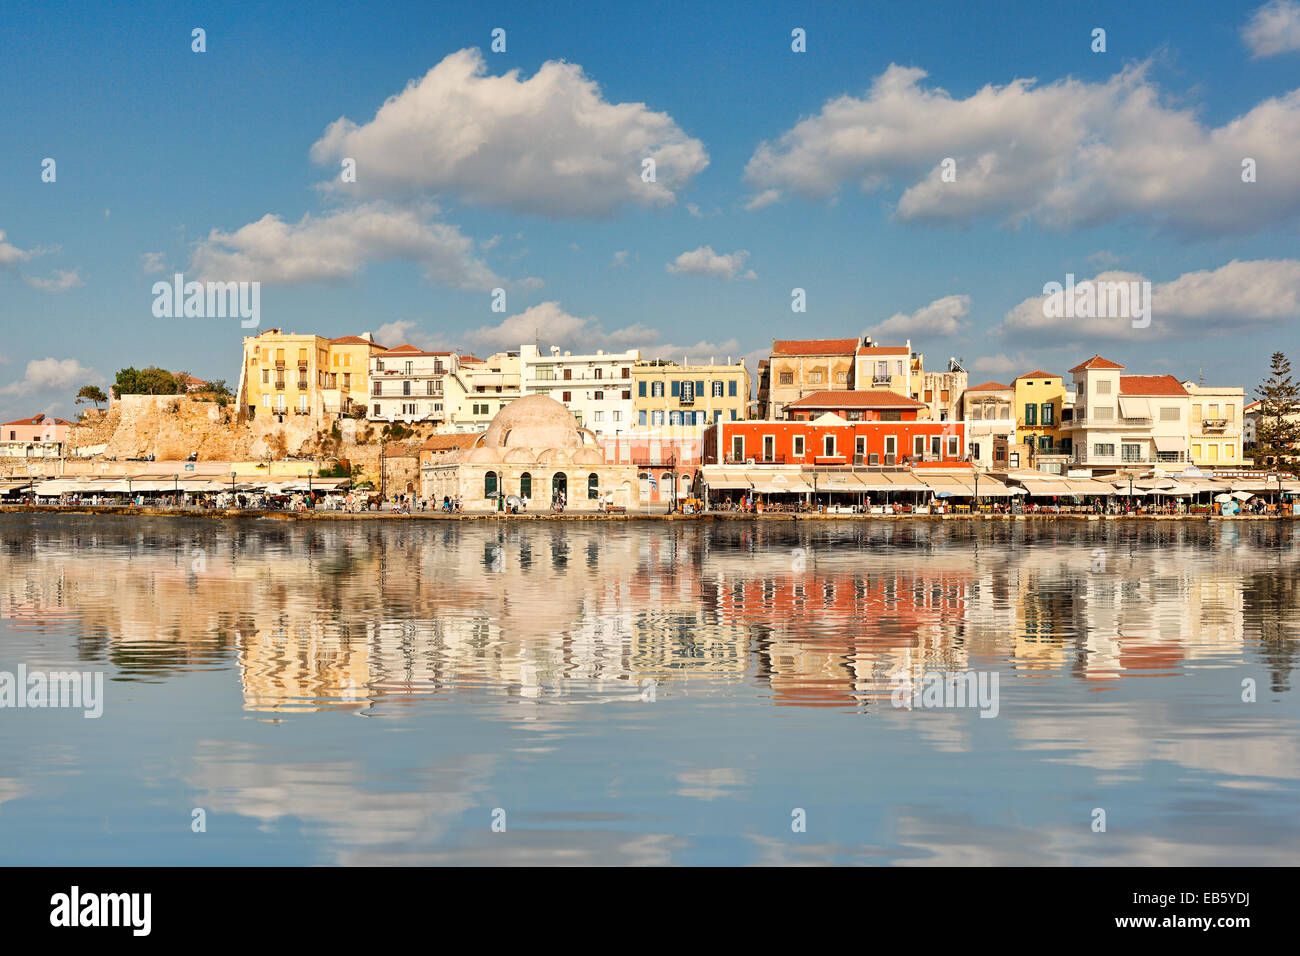 Chania's Venetian Harbour with the magnificent architecture was built in the 14th century in Crete, Greece - Stock Image